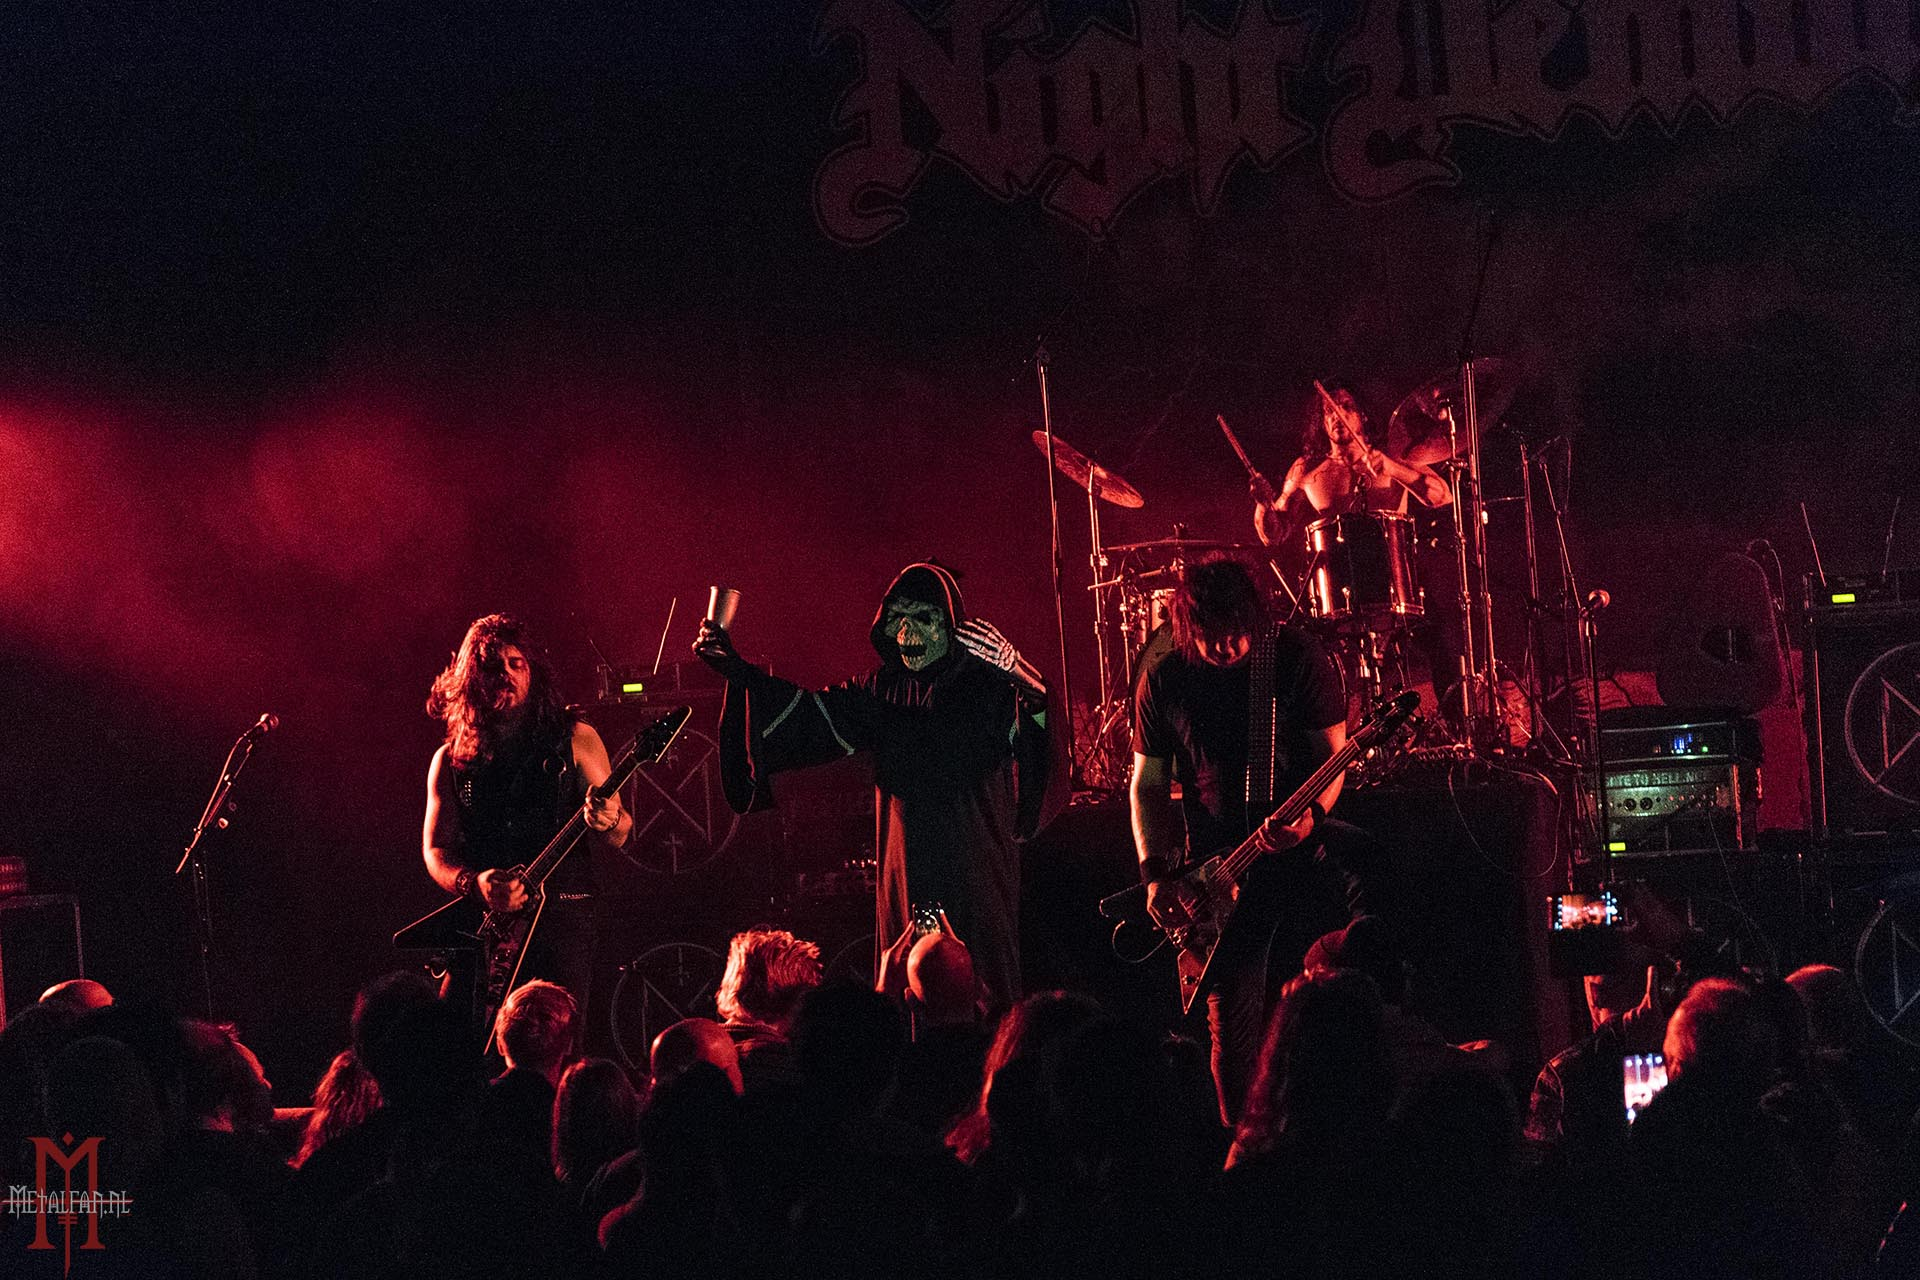 Night Demon @ Gebr. De Nobel, Leiden, 6-12-2019